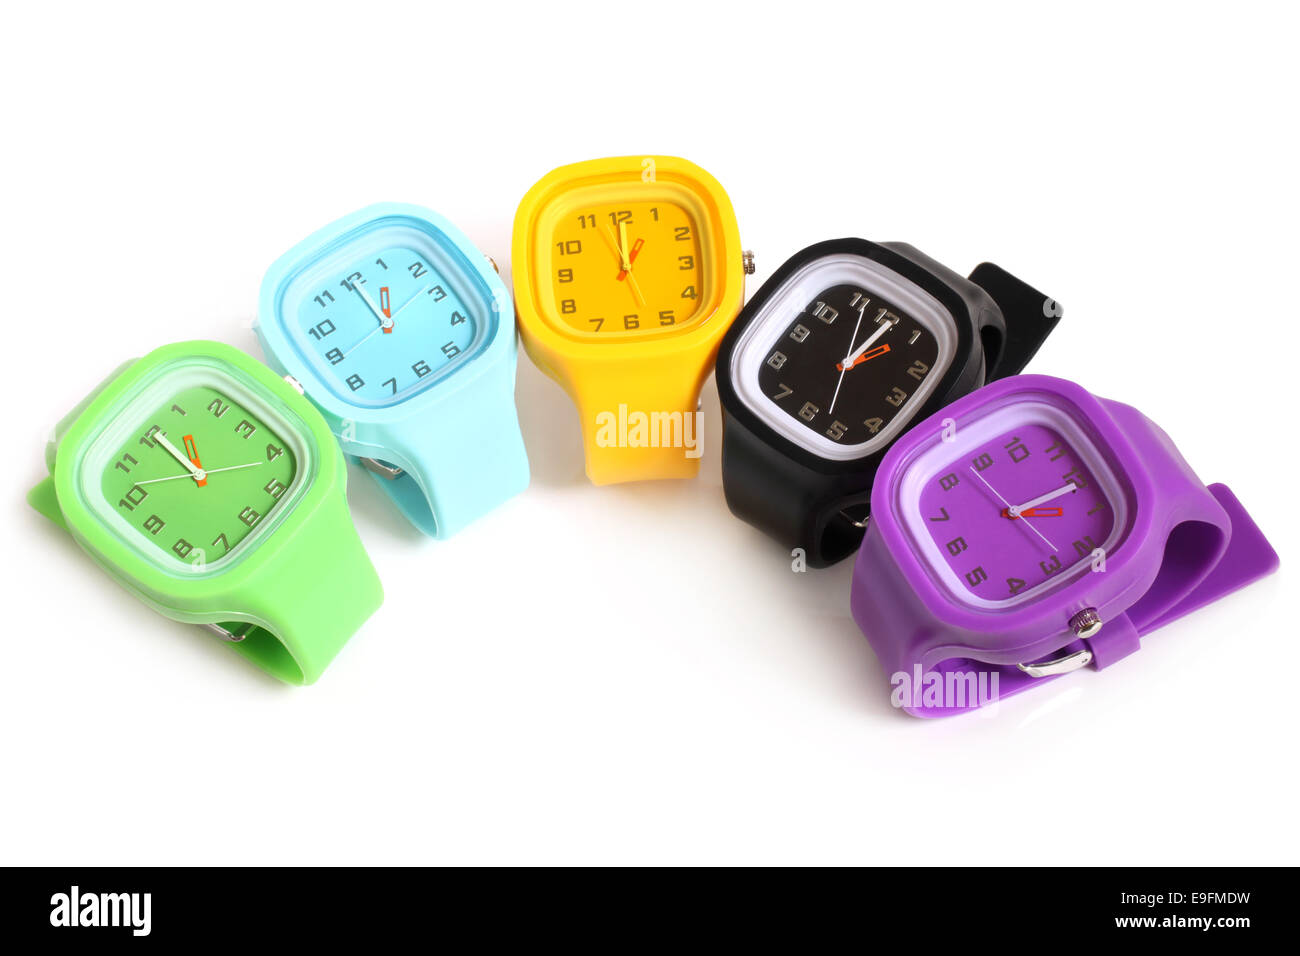 Wristwatches - Stock Image